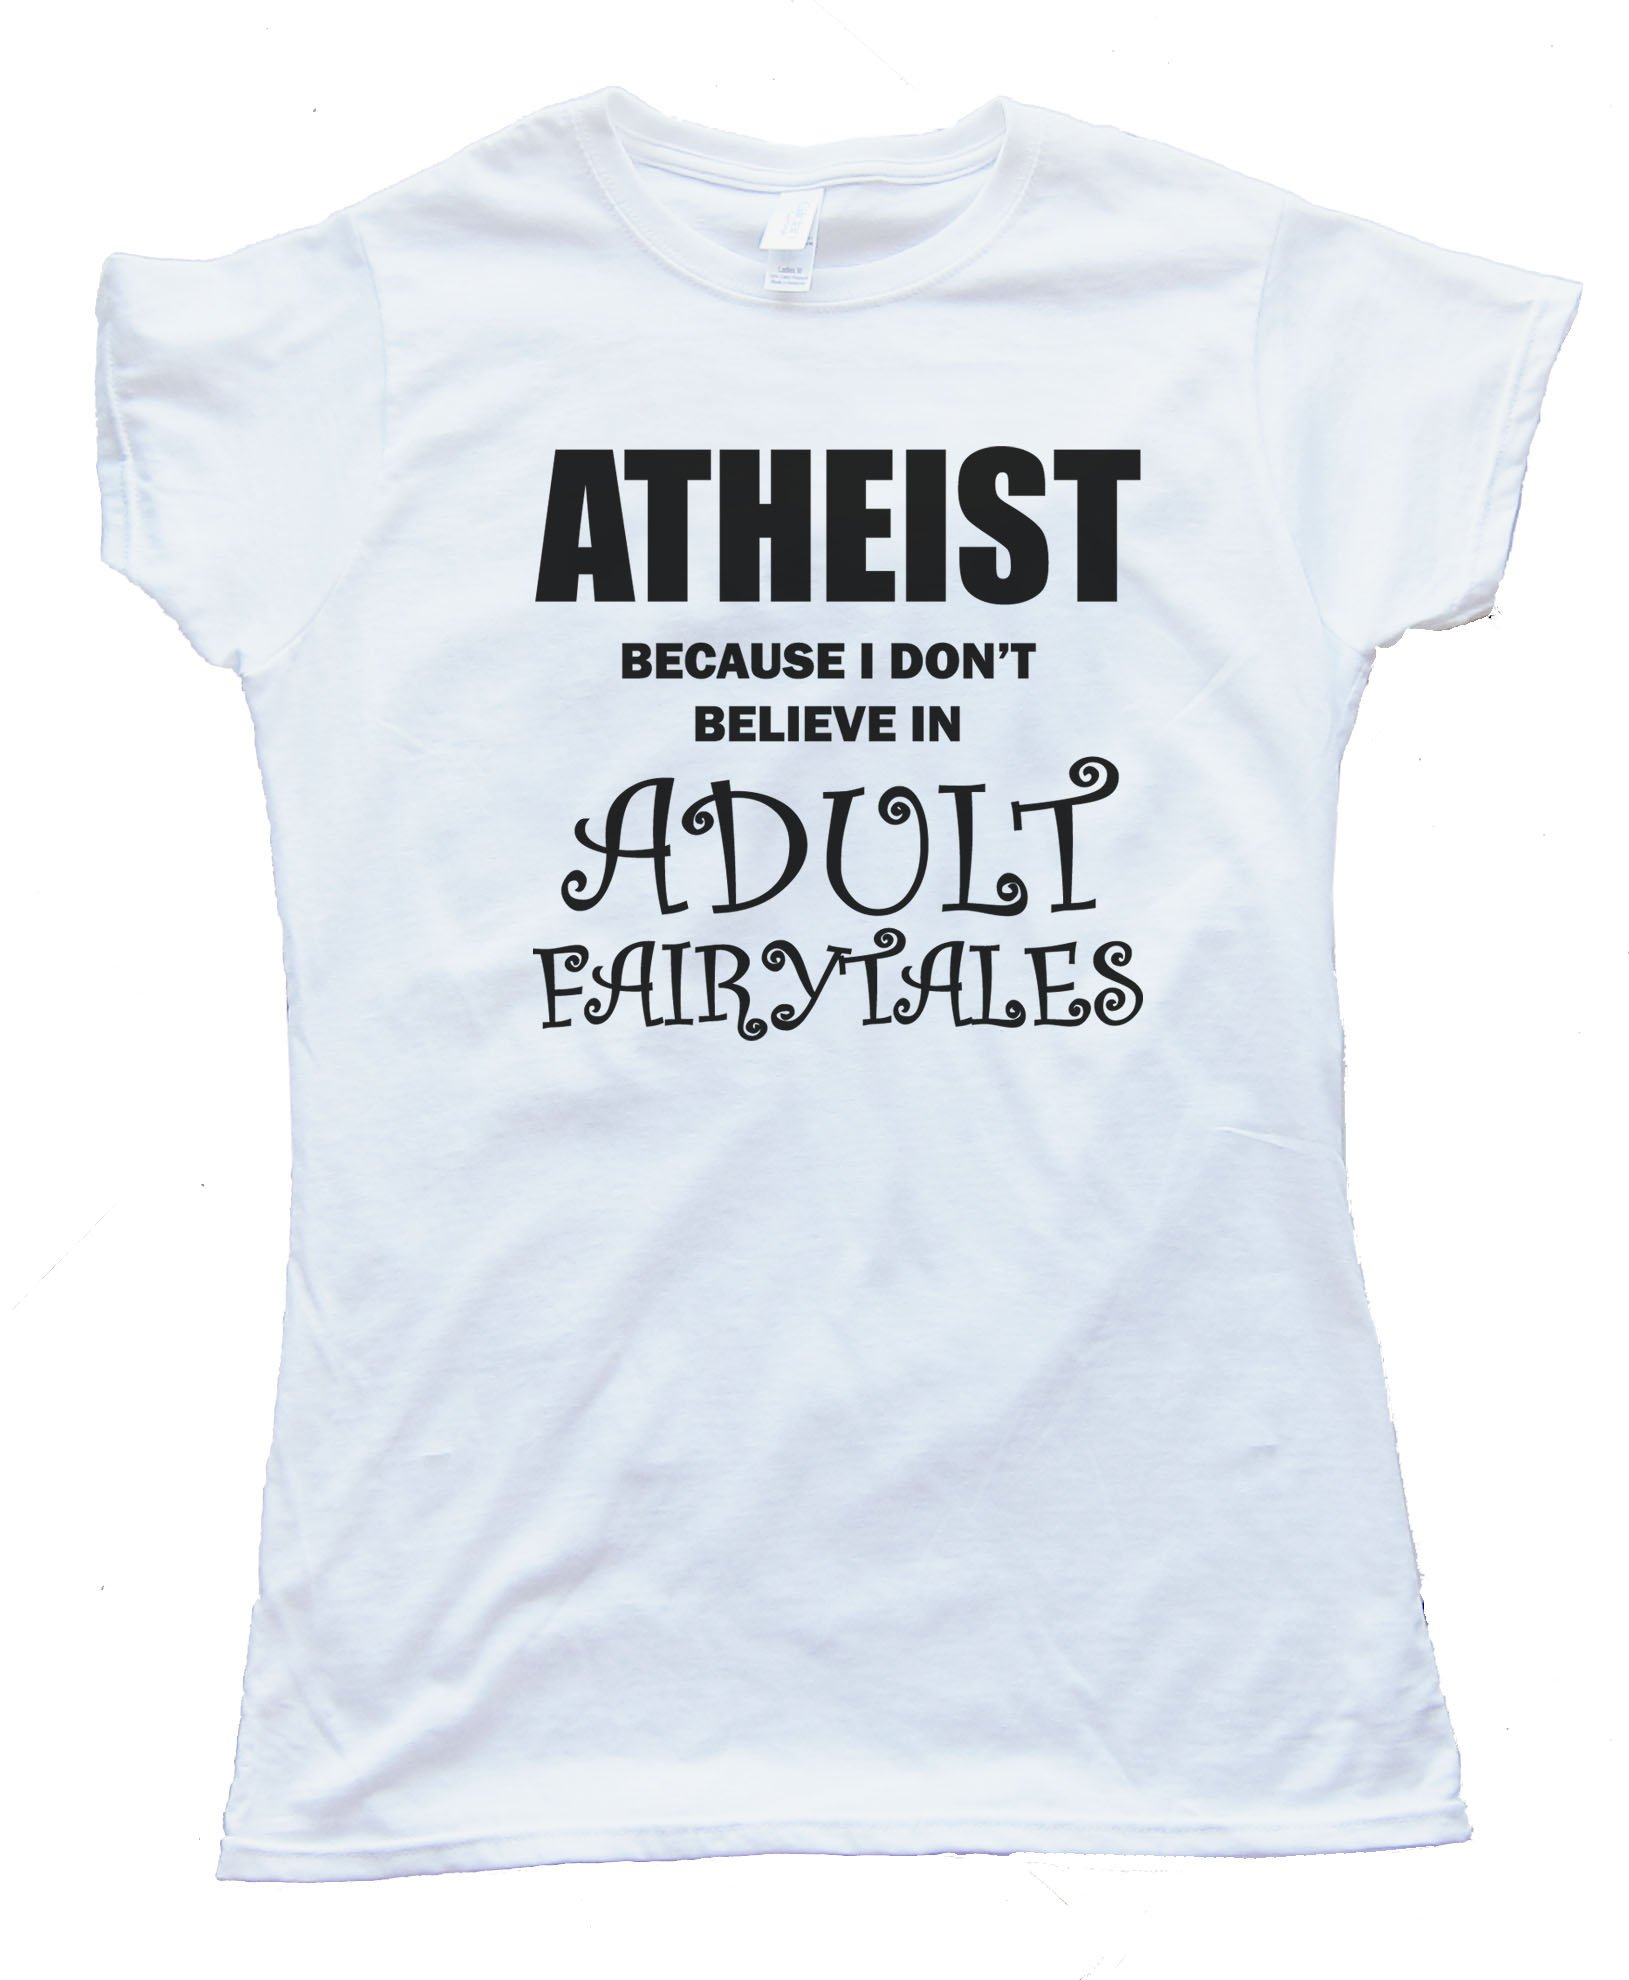 Womens Athiest - Because I Don'T Believe In Adult Fairytails Tee Shirt